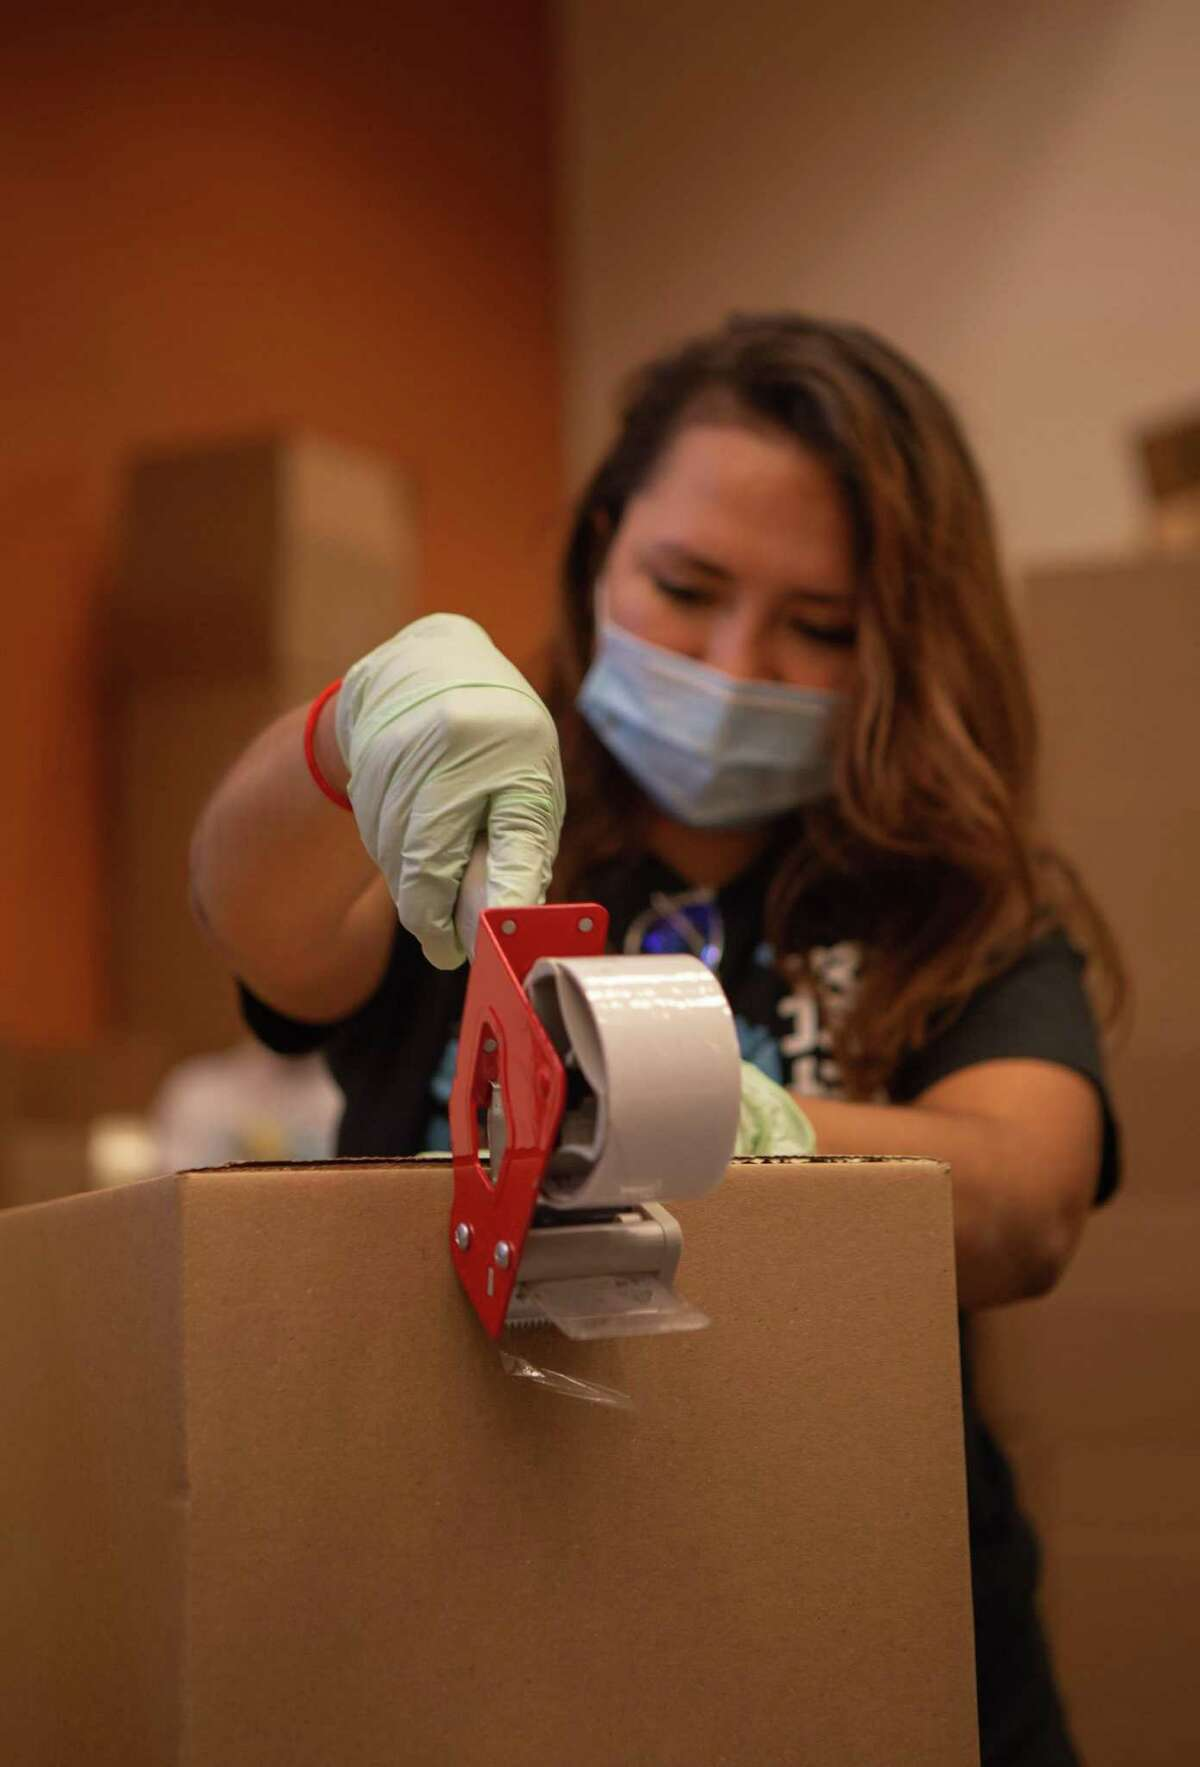 Volunteer, Ivania Escobar, 23, puts together boxes at the Houston Food Bank on Thursday, July 9, 2020. Volunteers now work in staggered shifts and are required to wear face-masks to prevent the spread of the coronavirus.